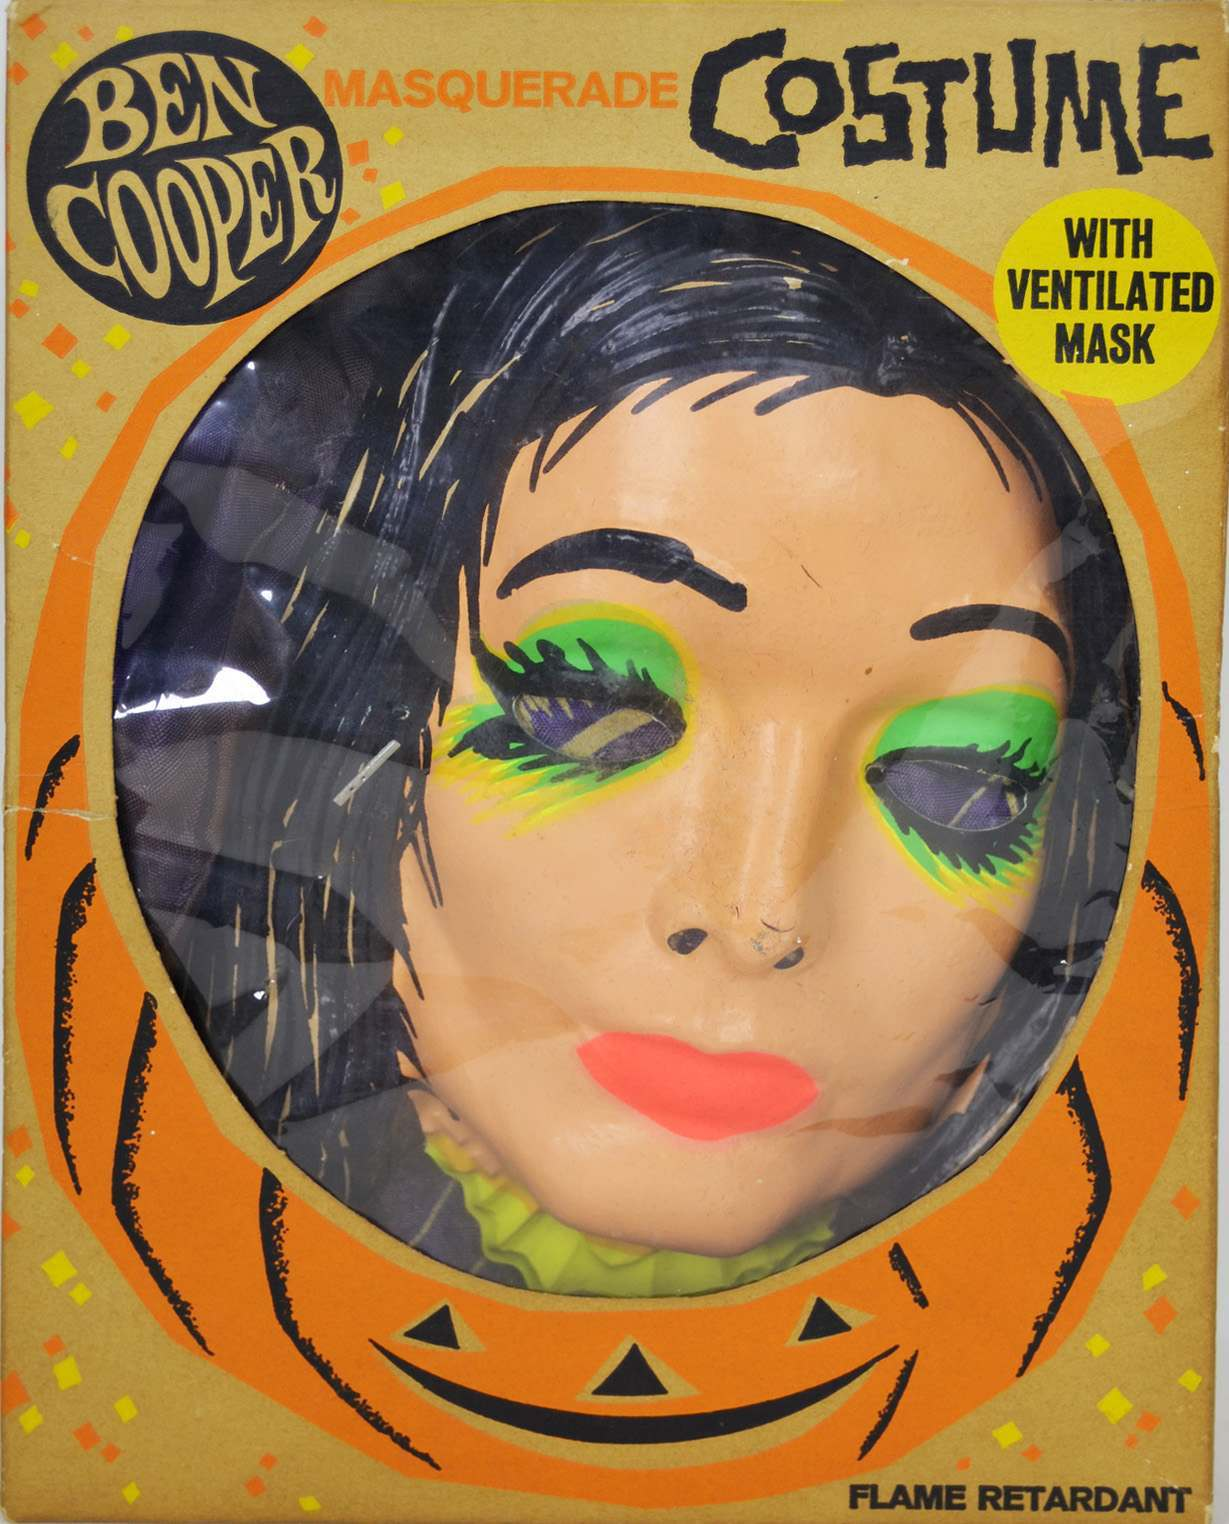 halloween costume (3)  sc 1 st  Flashbak & Bad Halloween Costumes of the 1970s and 80s - Flashbak